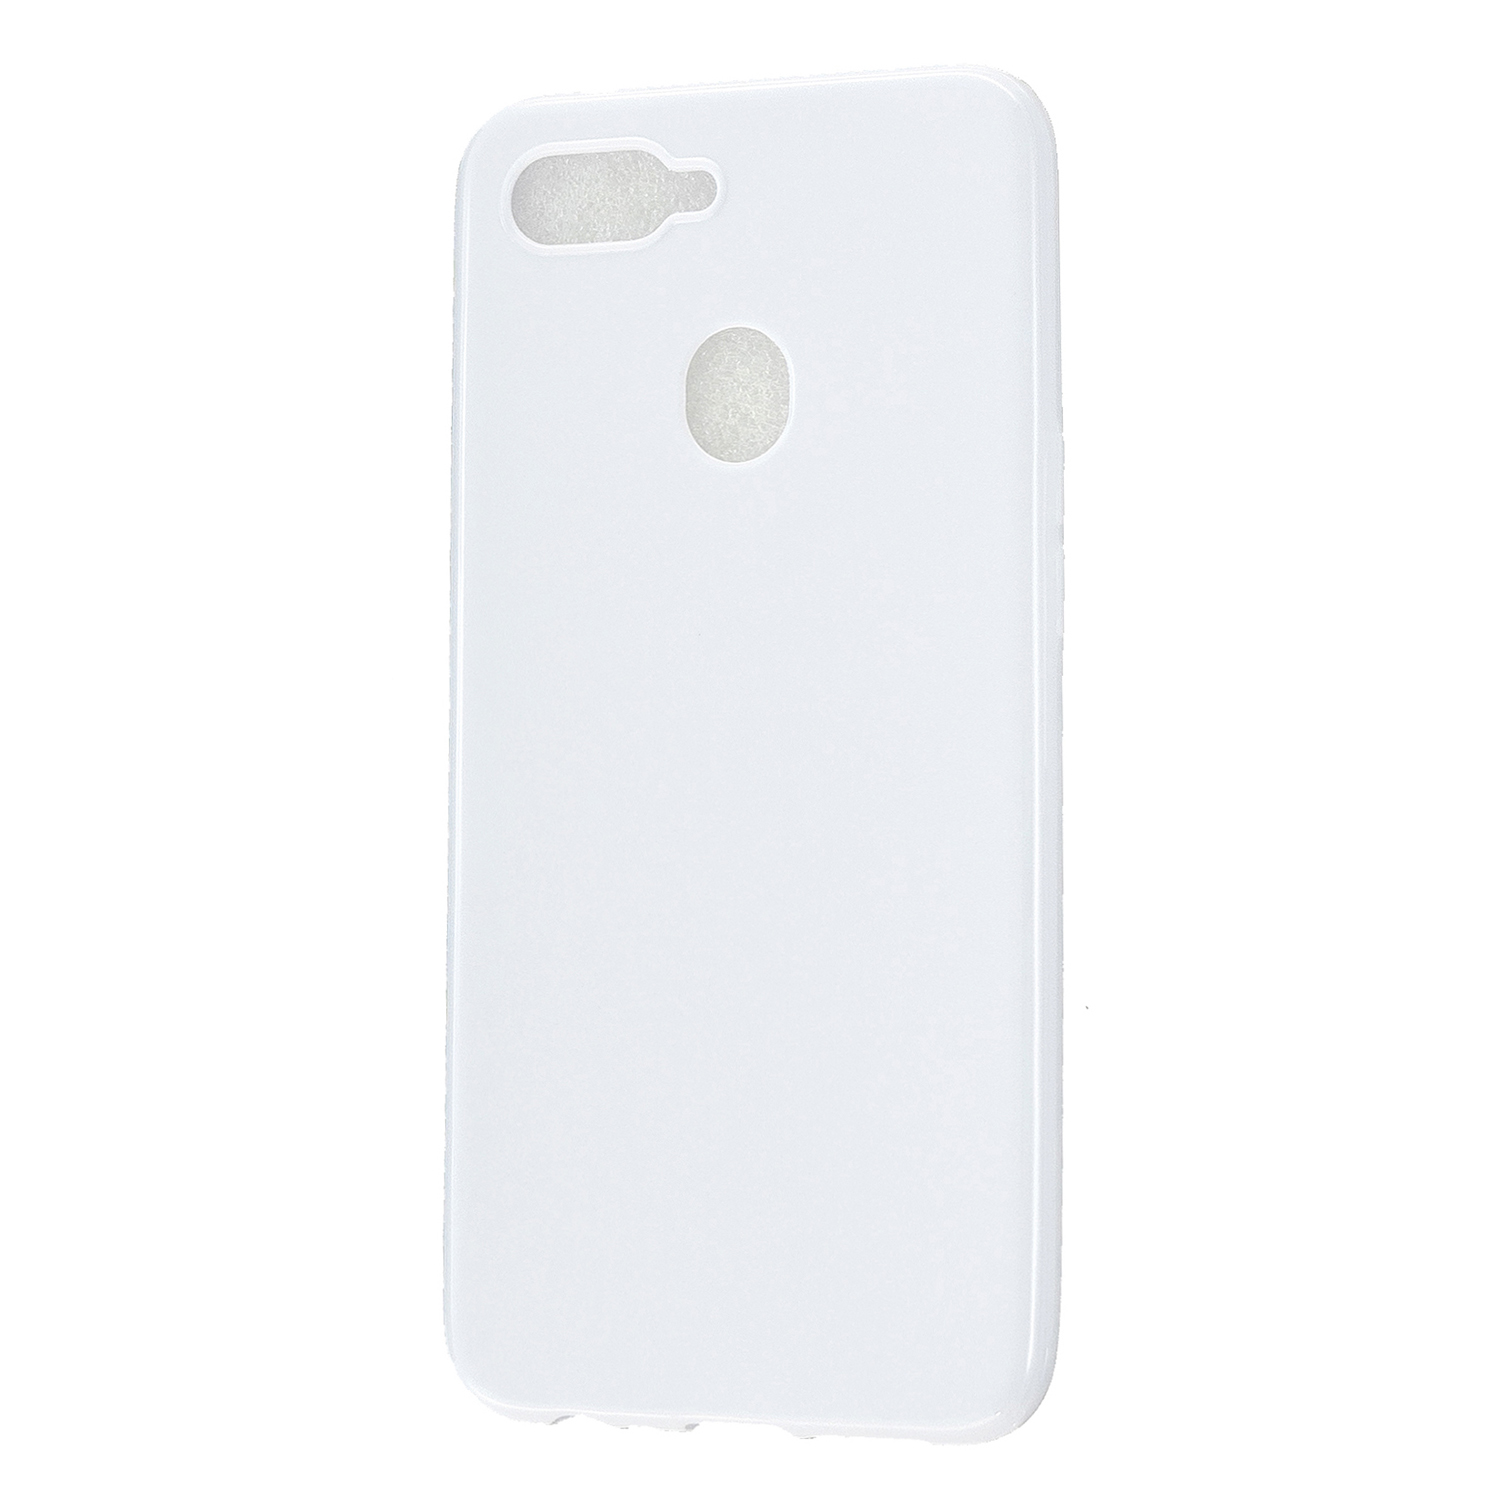 For OPPO A7/F9/F9 Pro Cellphone Cover Non-Slip Ultra Thin Silm Fit Easy Install Soft TPU Smartphone Shell Milk white